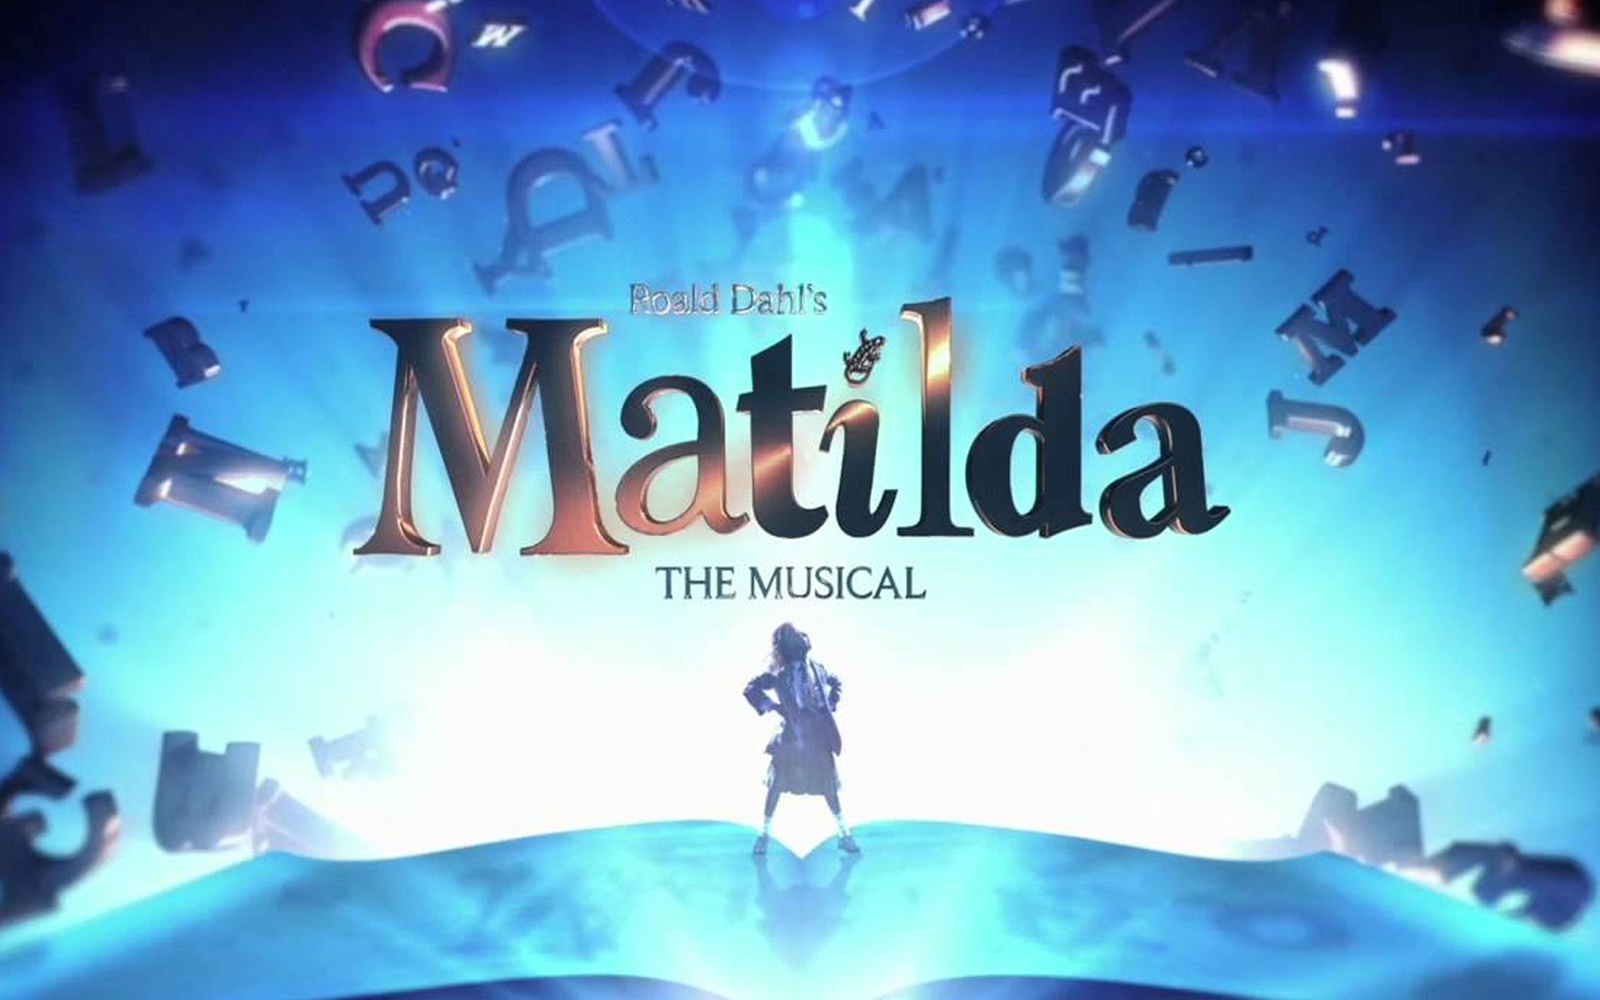 3489a9b0 ade7 455c 8dee e608e4f0fefd 3027 london matilda the musical 01